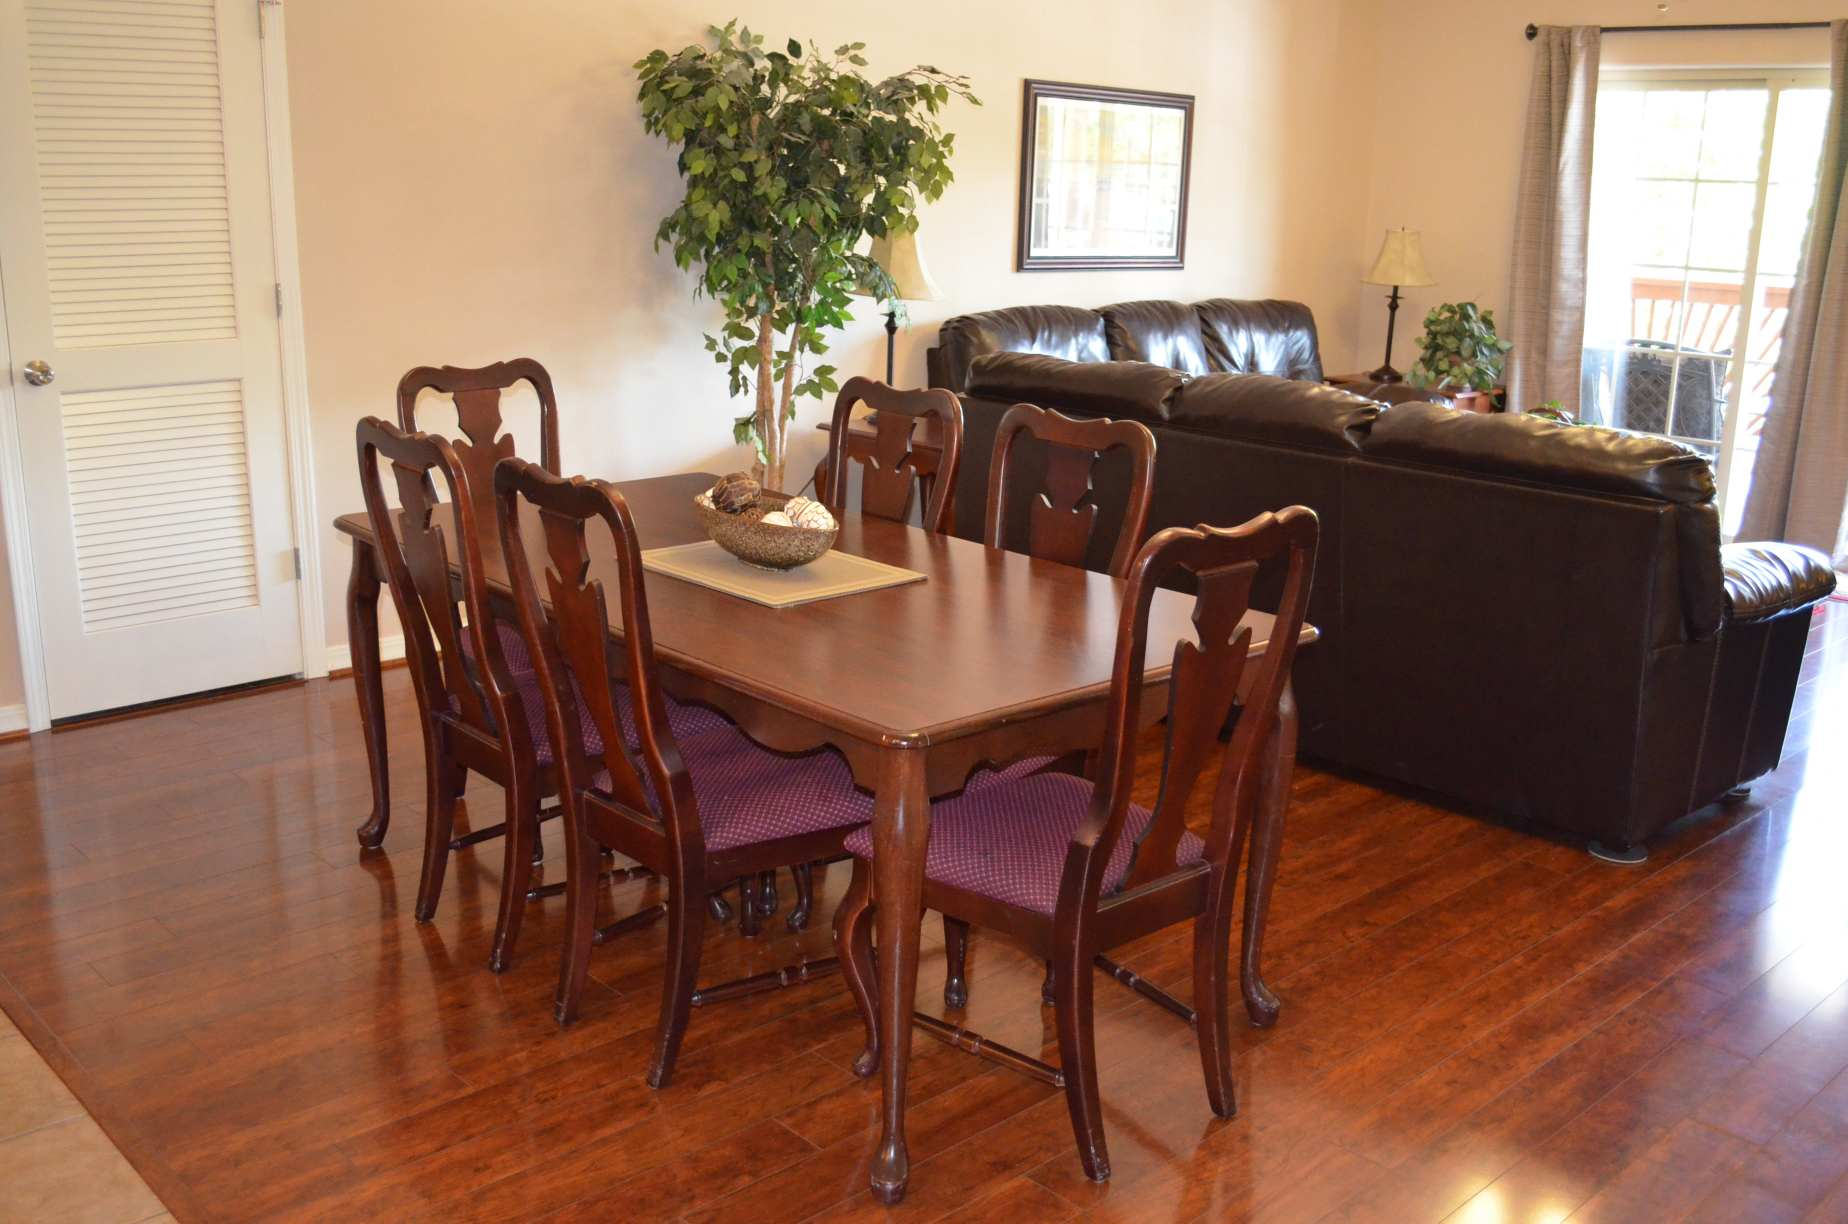 dining-room-table-on-hardwood-floor